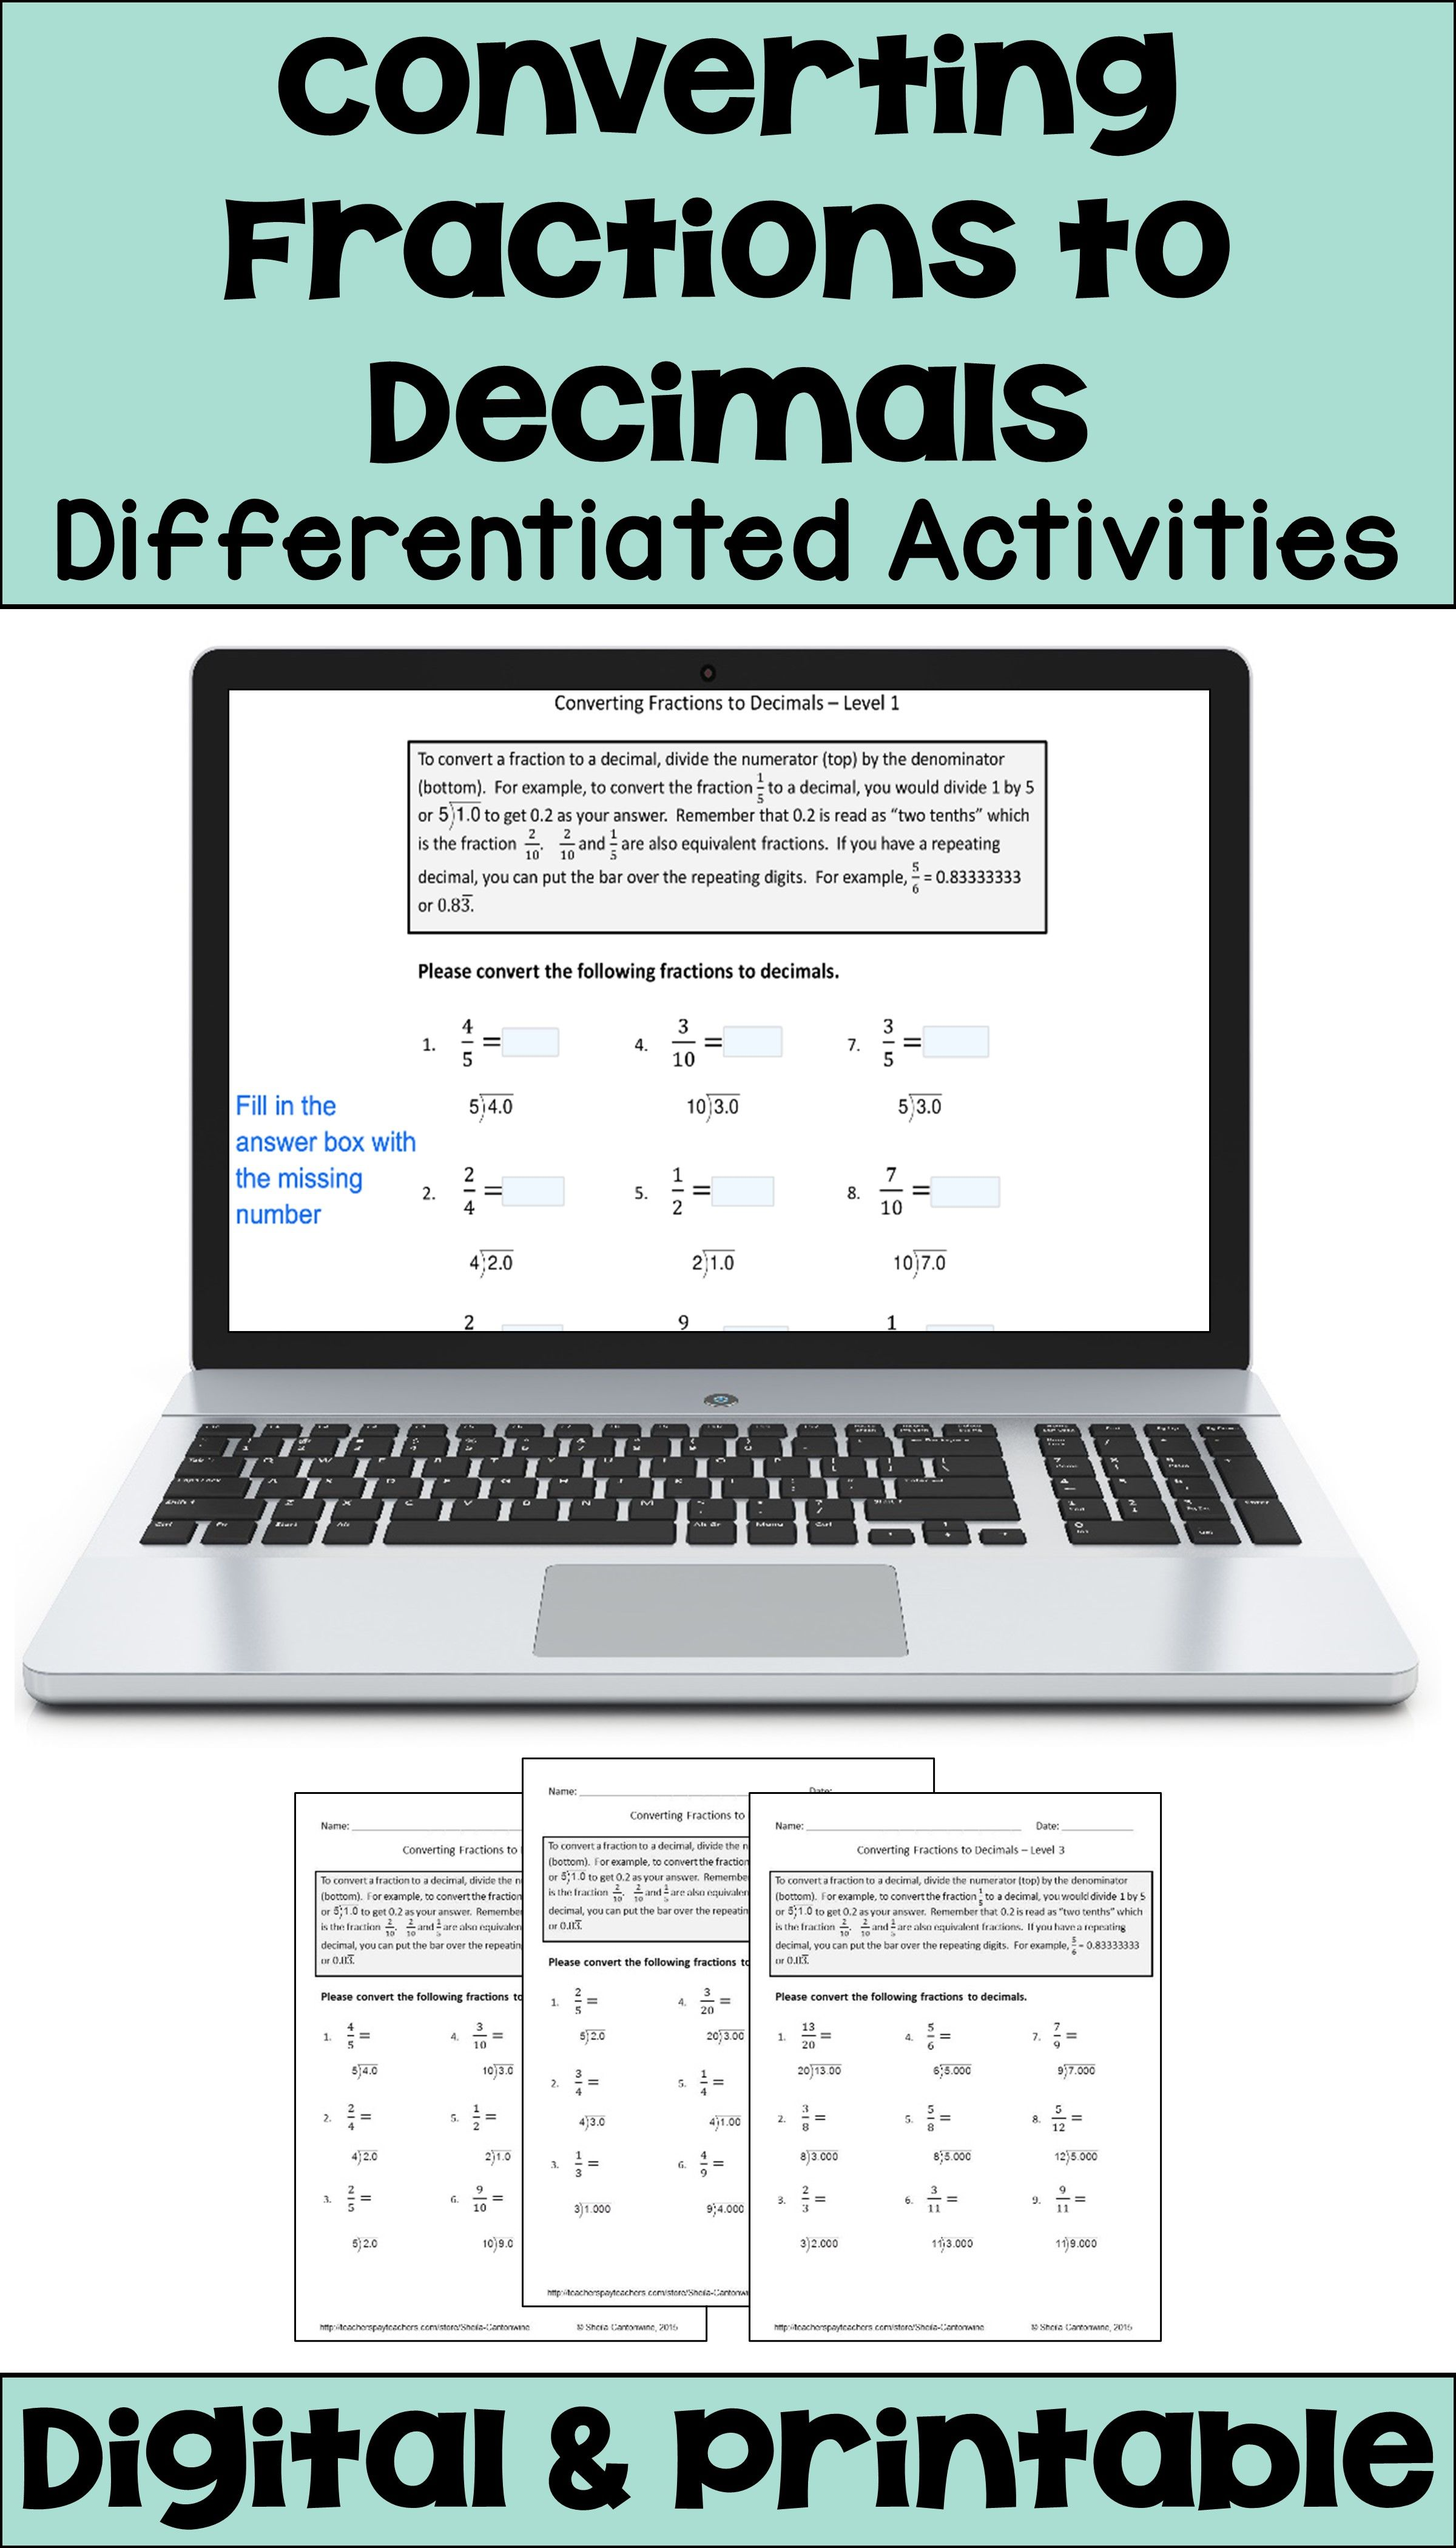 medium resolution of Converting Fractions to Decimals Differentiated Activities with Digital and  Printable Opti… in 2020   Converting fractions